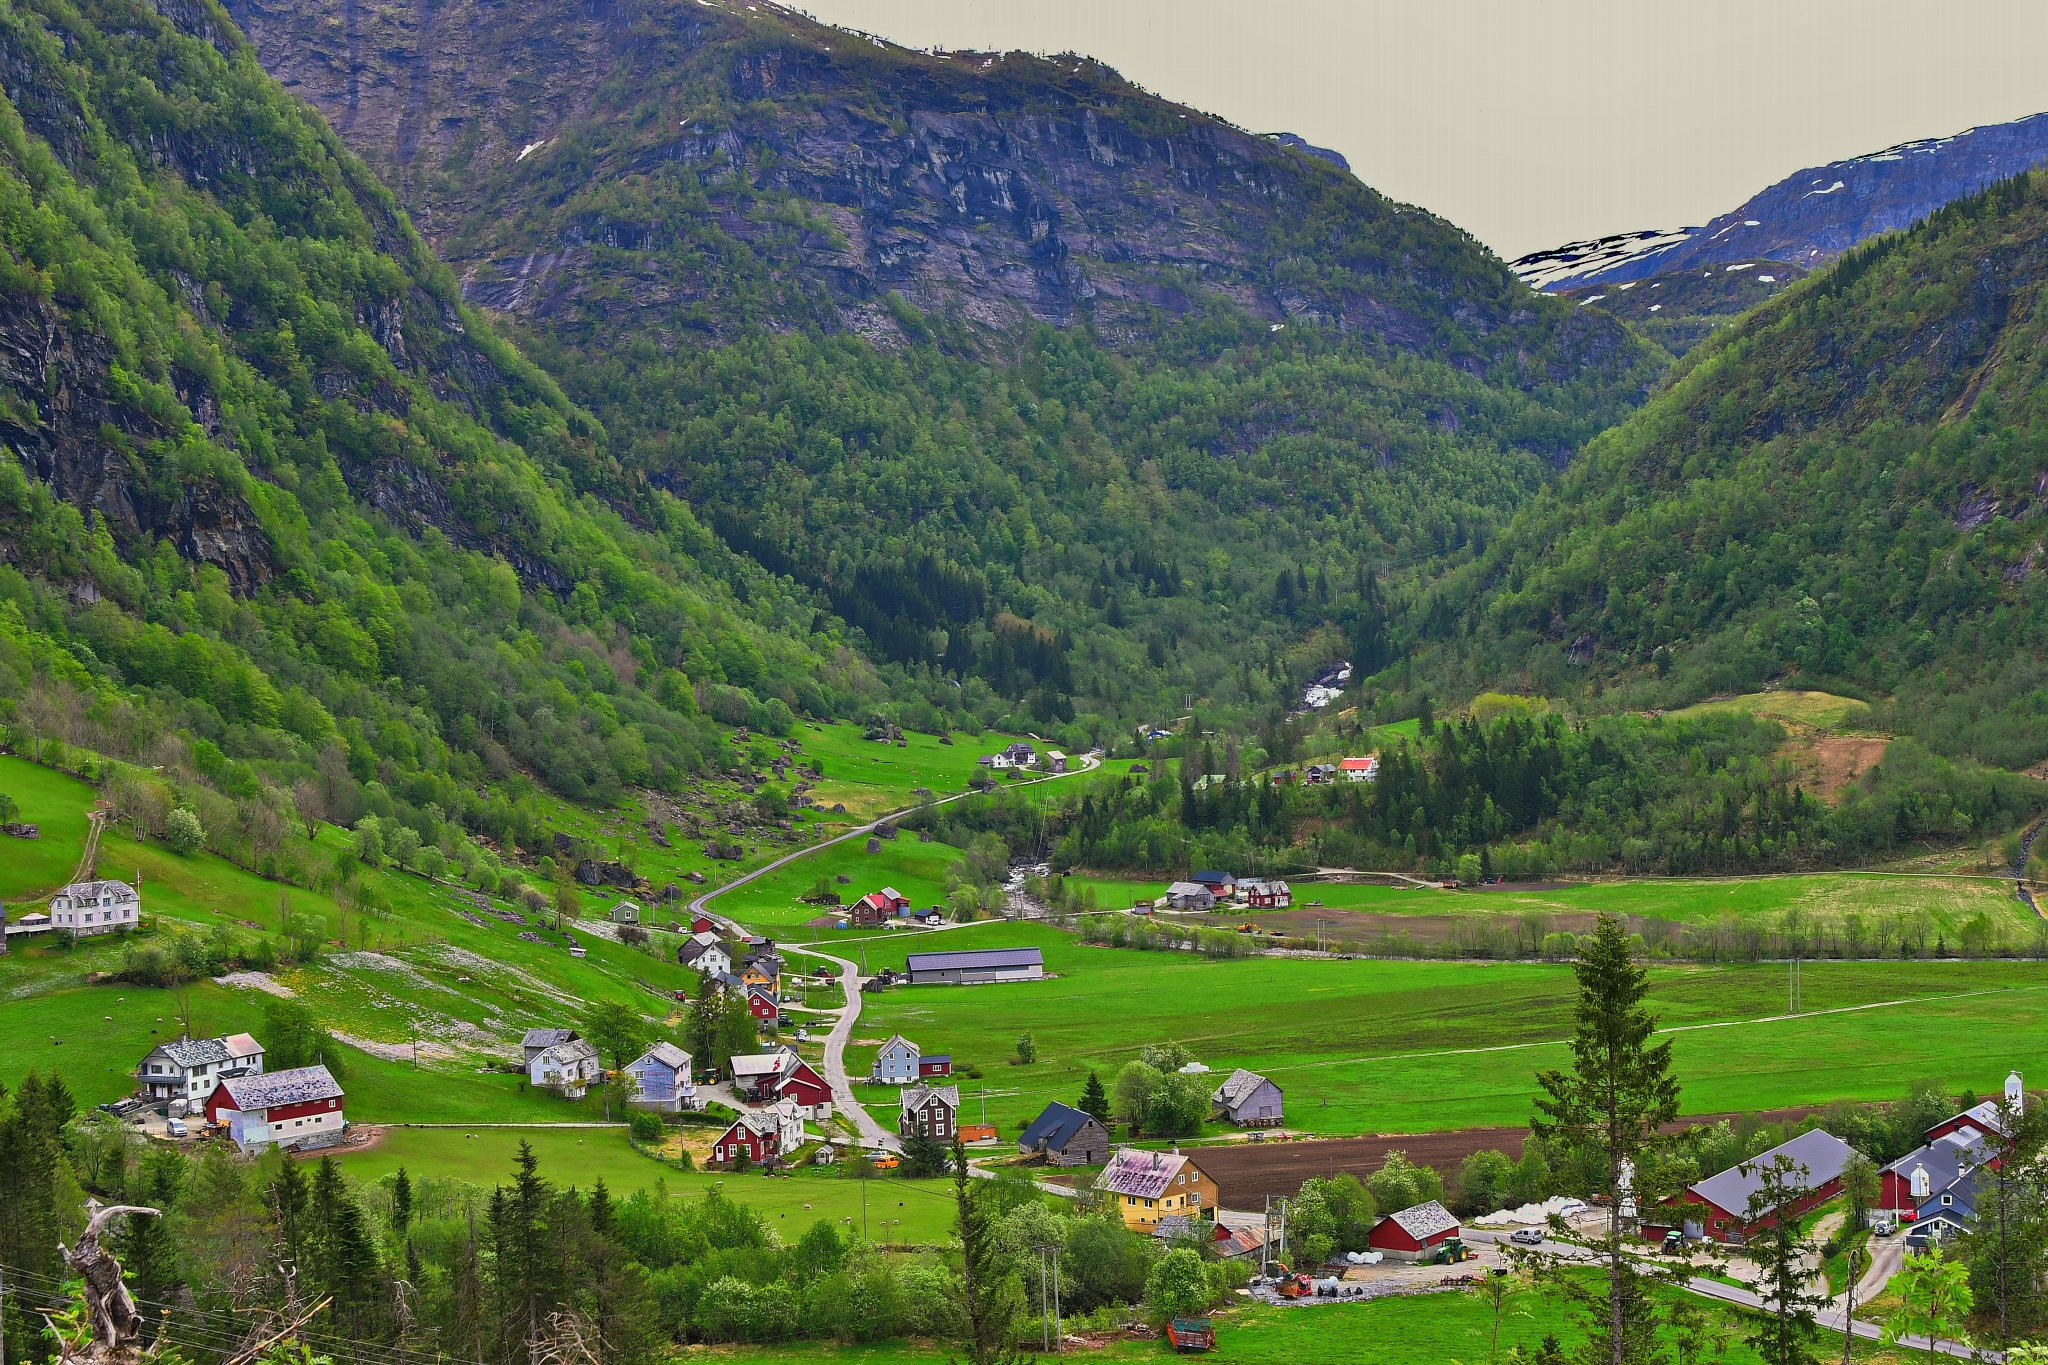 Farmers land between the mountains. by Per Molvik